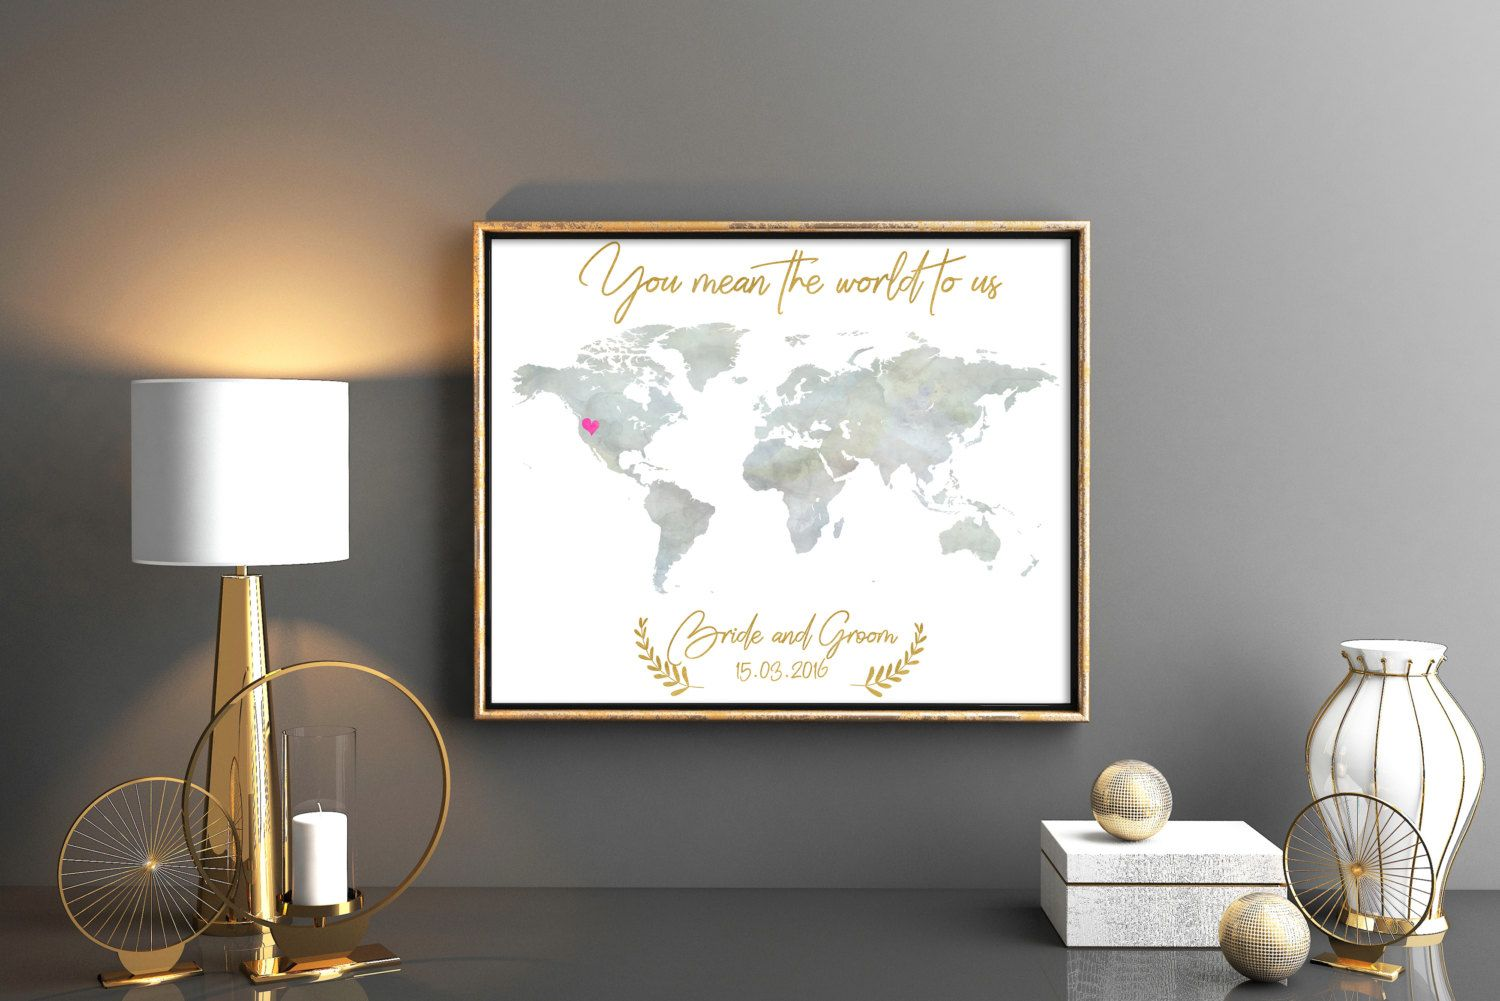 Unique wedding guestbooks wedding guest book world map guest book unique wedding guestbooks wedding guest book world map guest book wrold map wedding wedding guestbook map gumiabroncs Image collections